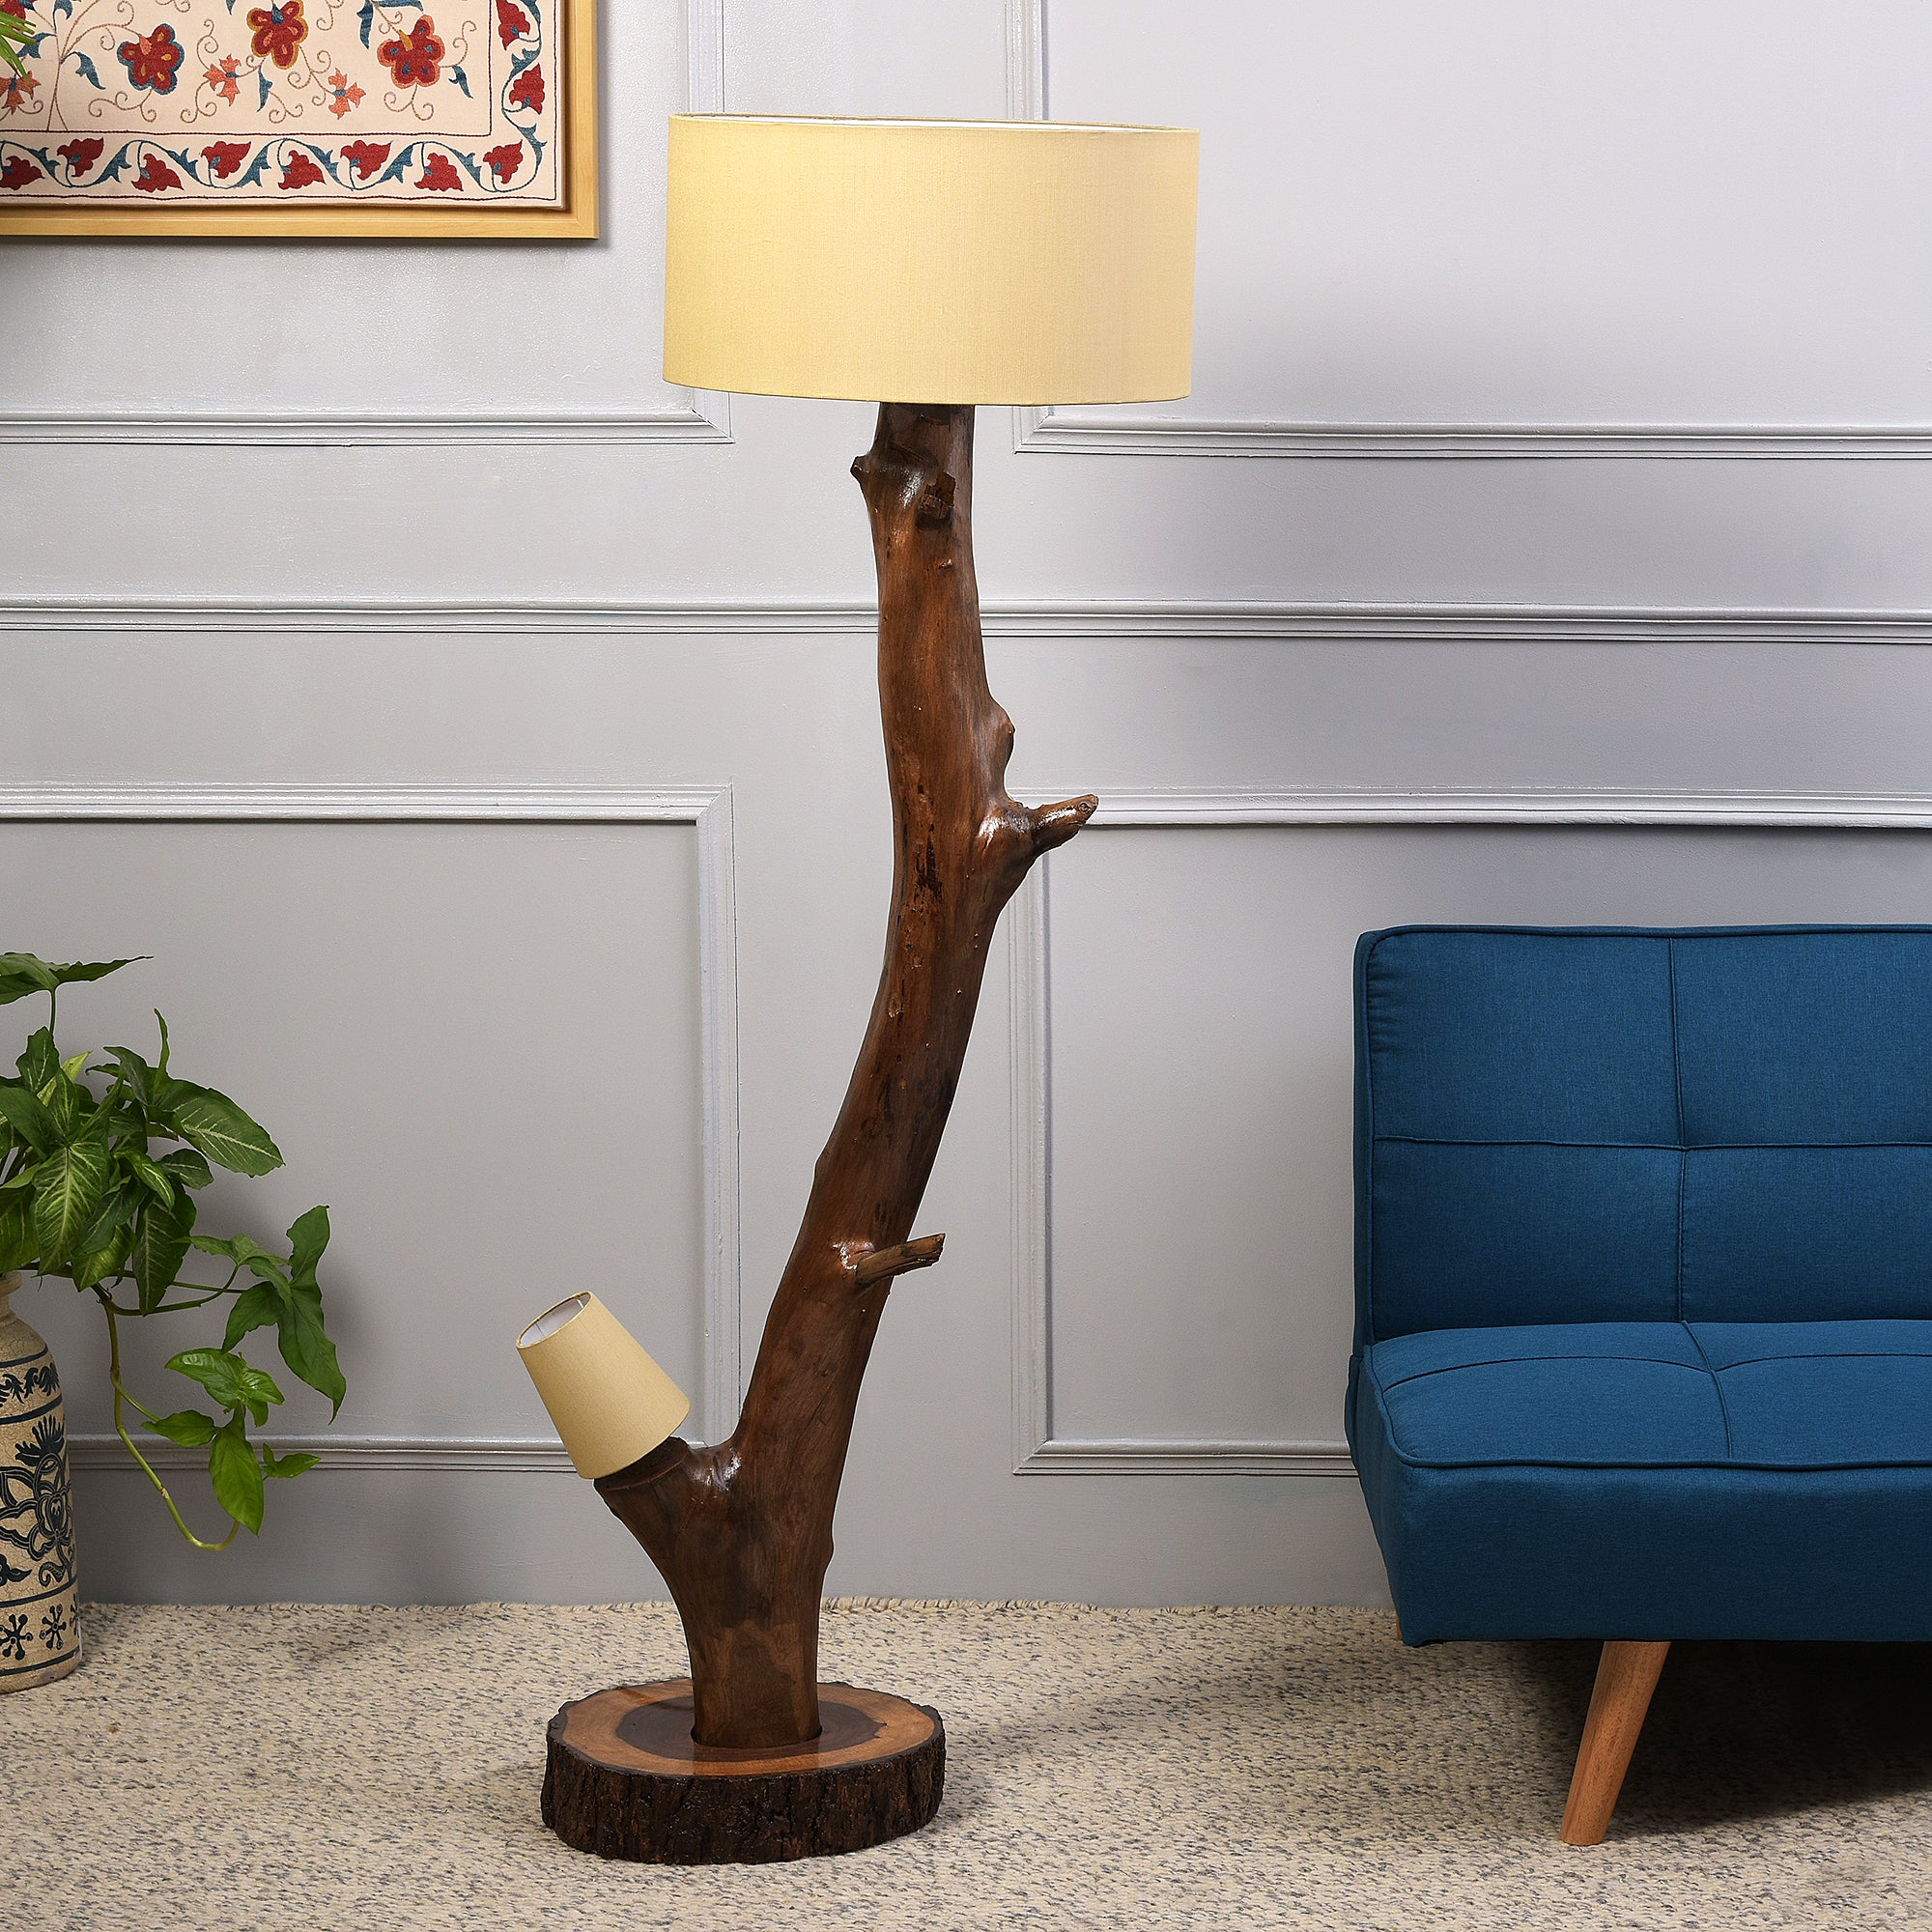 'Caledonian' Floor Lamp